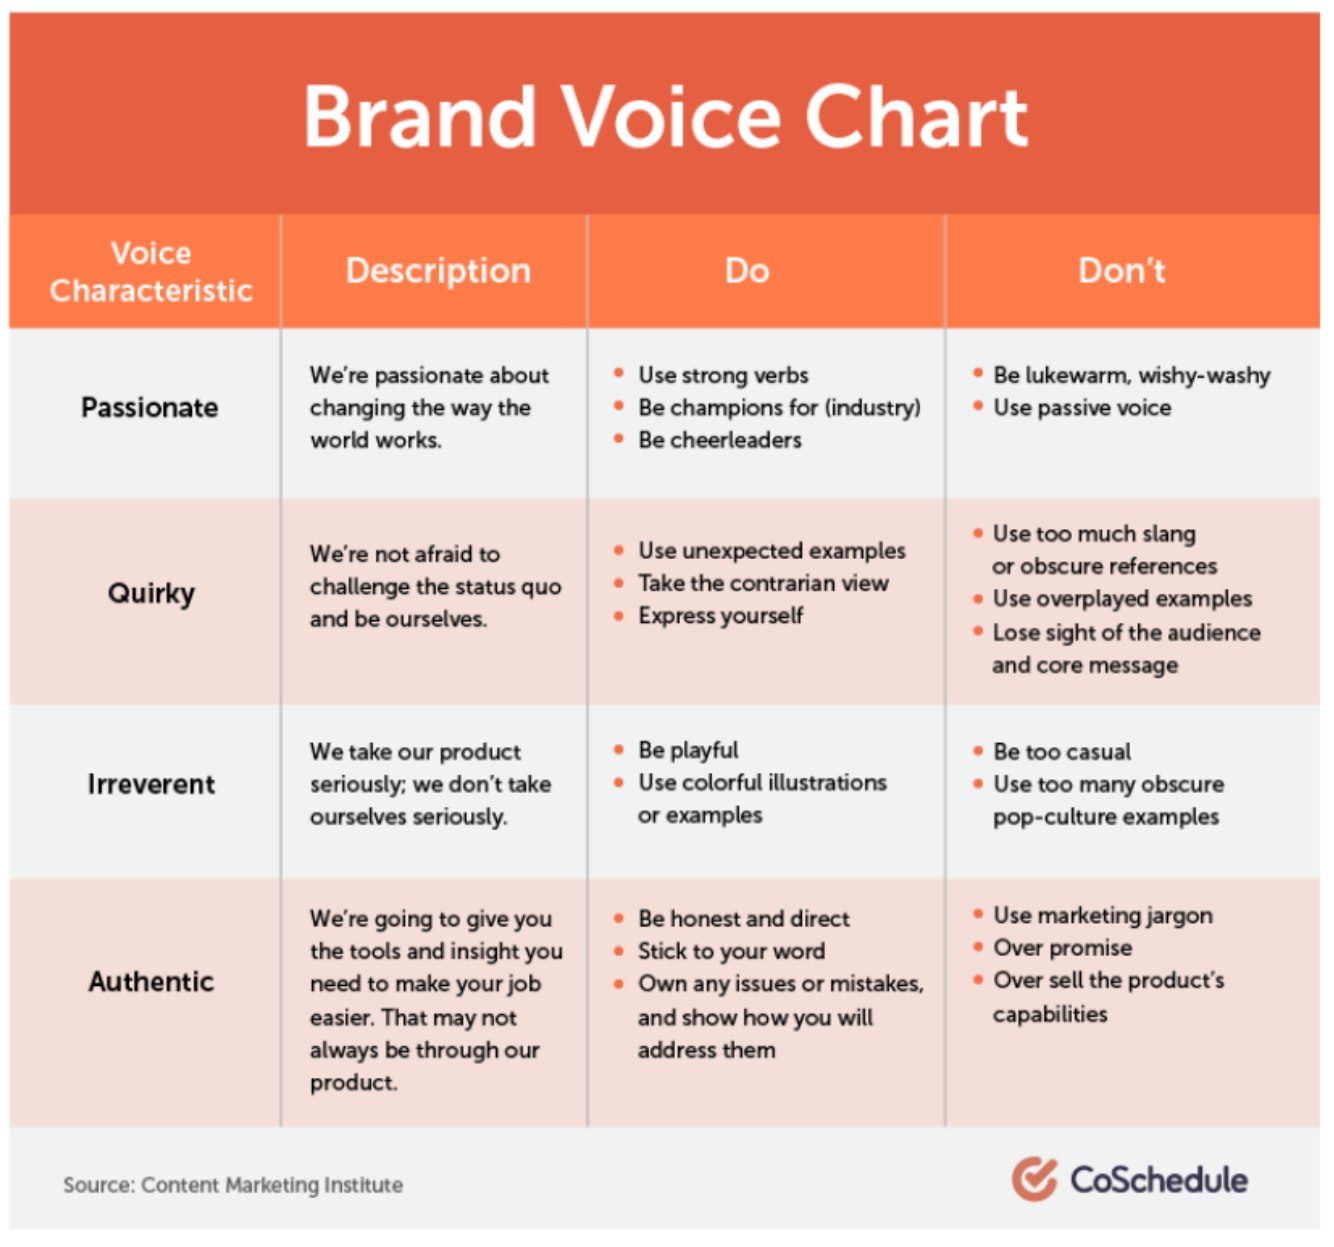 A brand voice chart detailing dos and dont's for 4 brand voice examples when learning copywriting: passionate, quirky, irreverent, authentic.